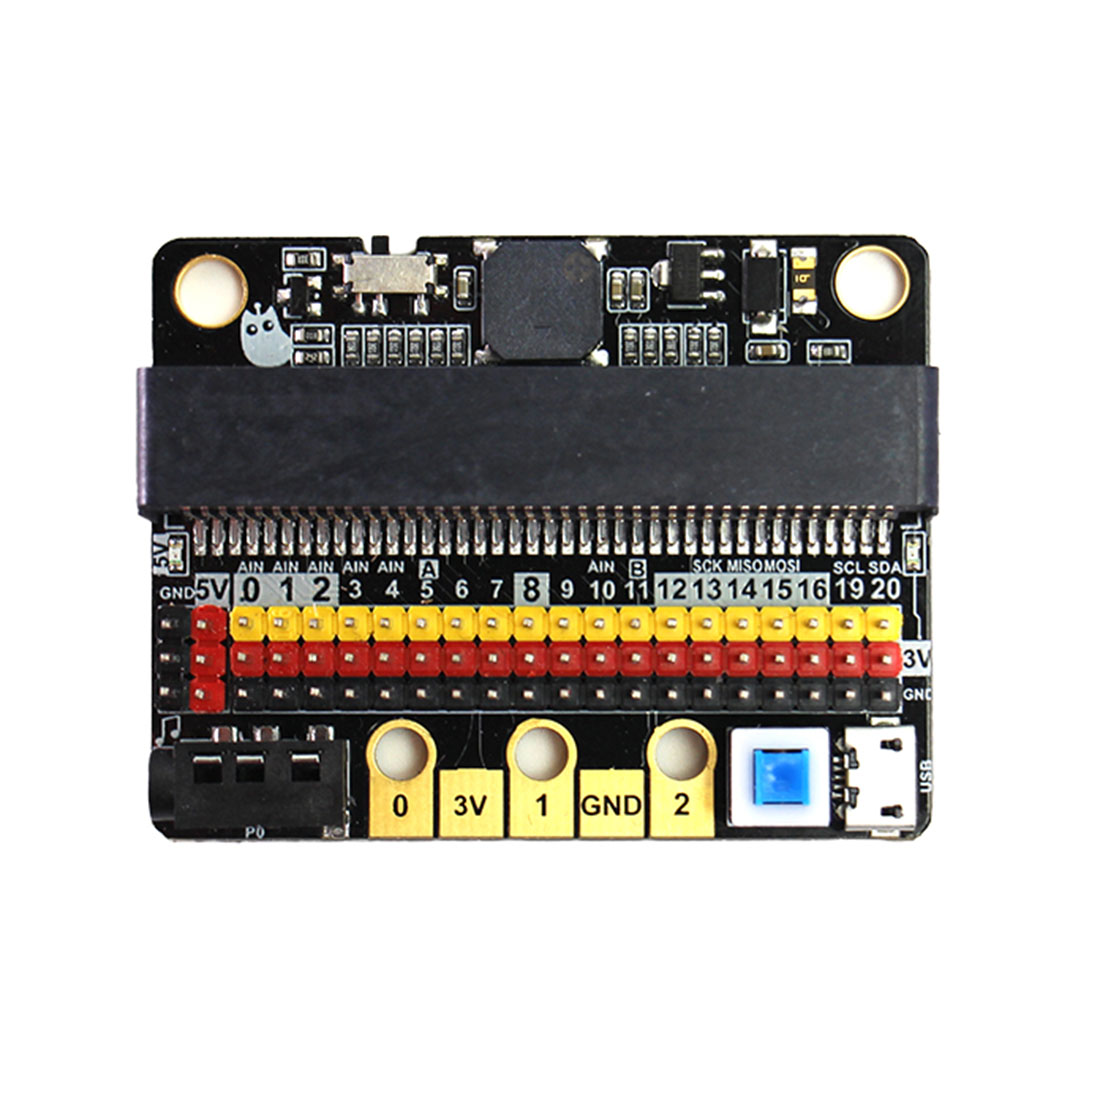 Microbit IOBIT V1.0 V2.0 Development Board Expansion Board STEM Educational Toy Accessories Educational Toy Gift For Kid Adult